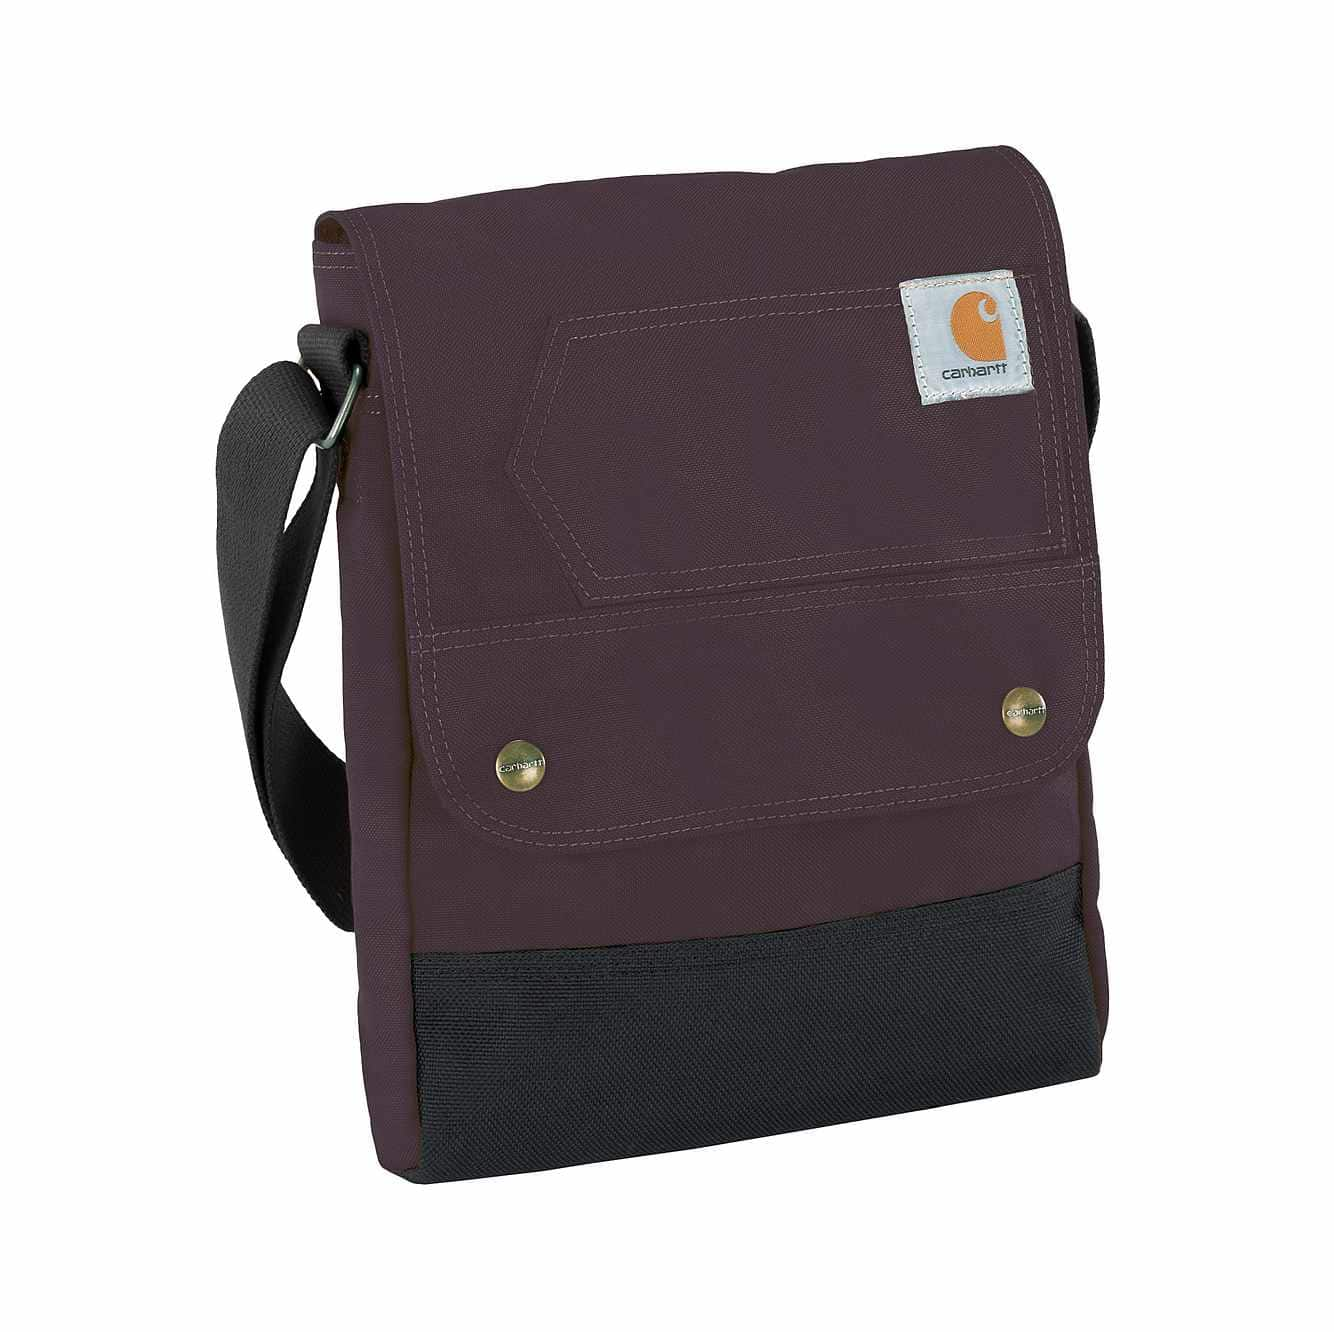 Picture of Legacy Cross Body Bag in Wine